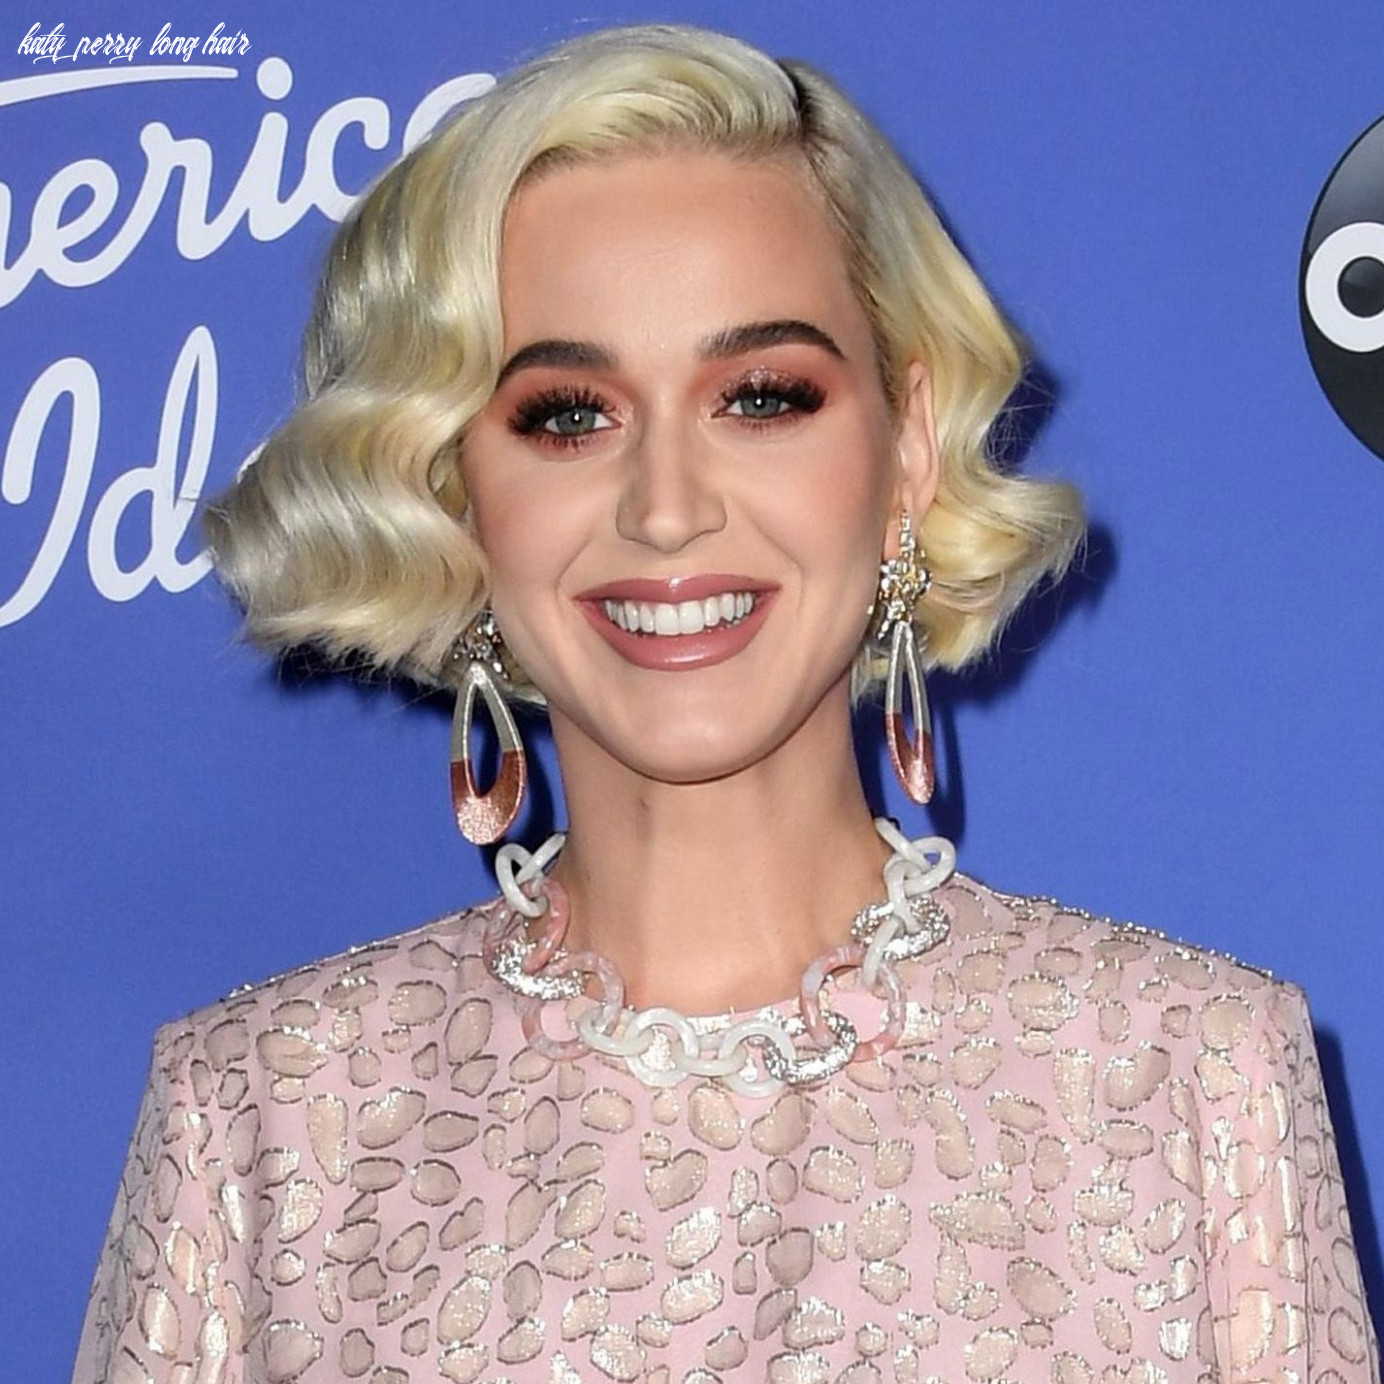 Katy perry looks totally different with her new long hair — photos